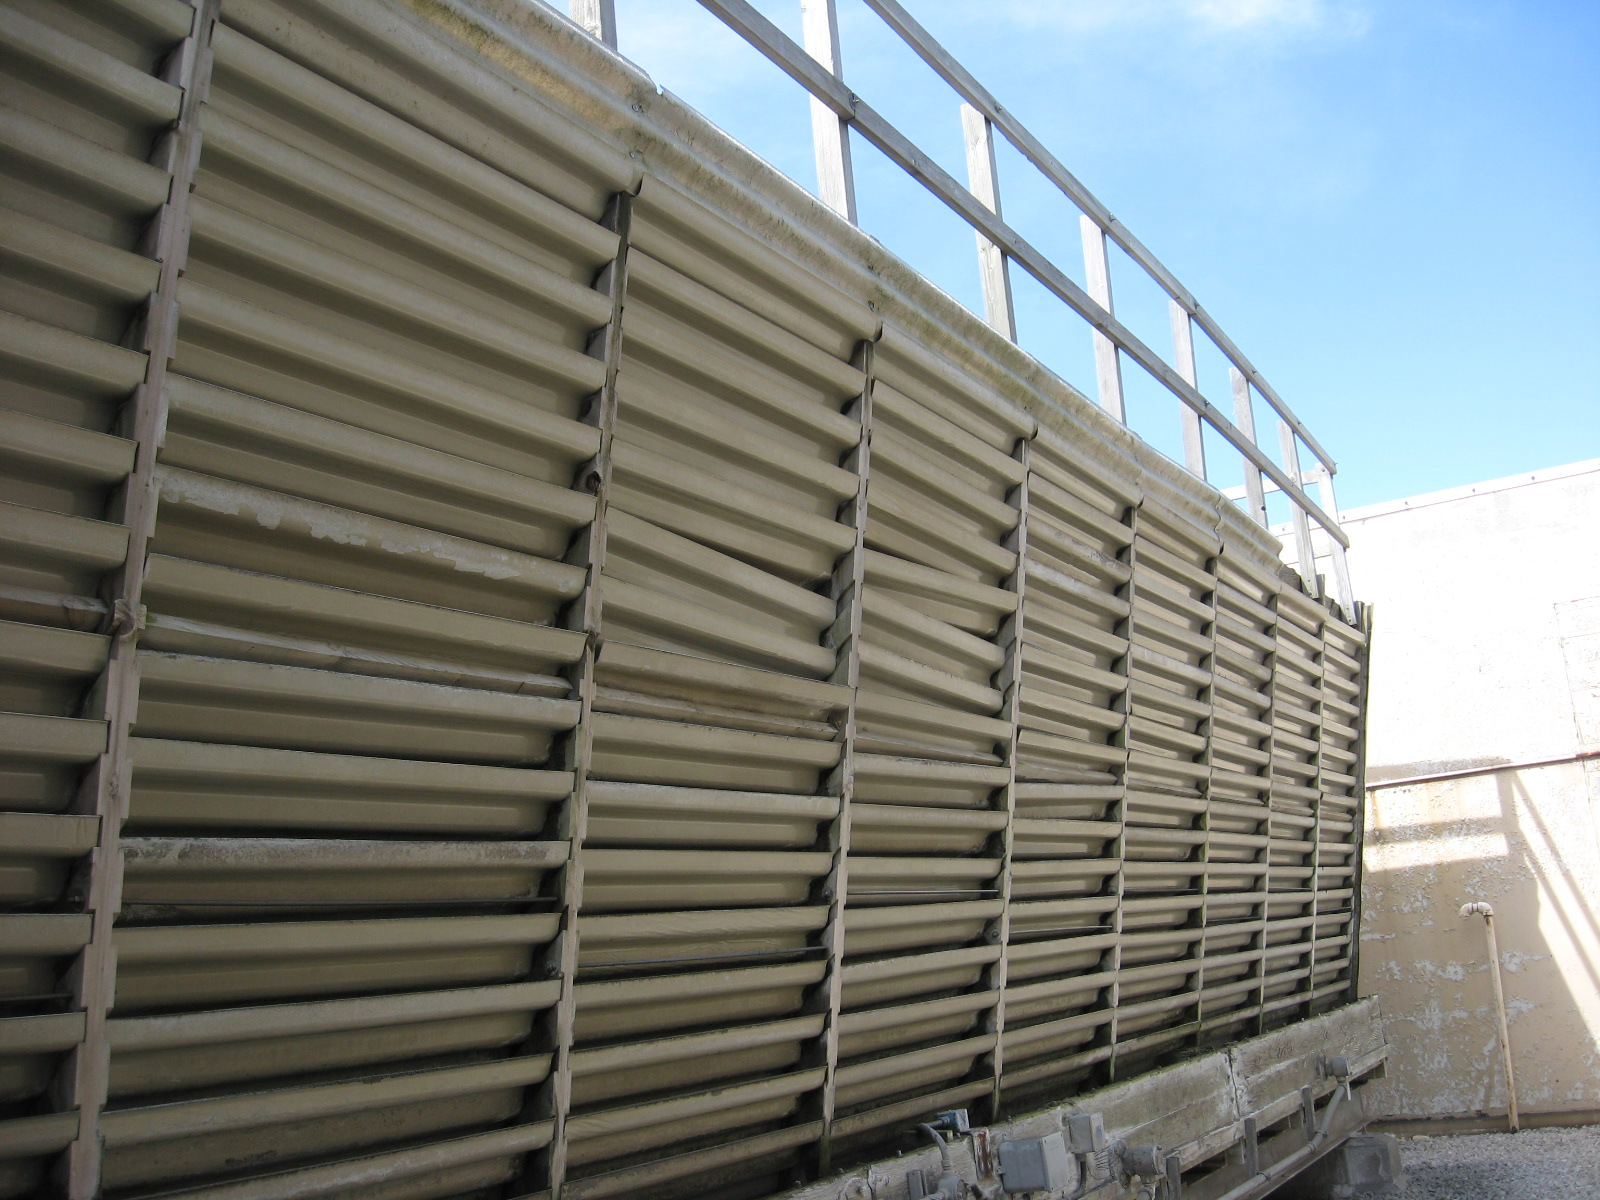 Cossflow tower metal louvers before replacement